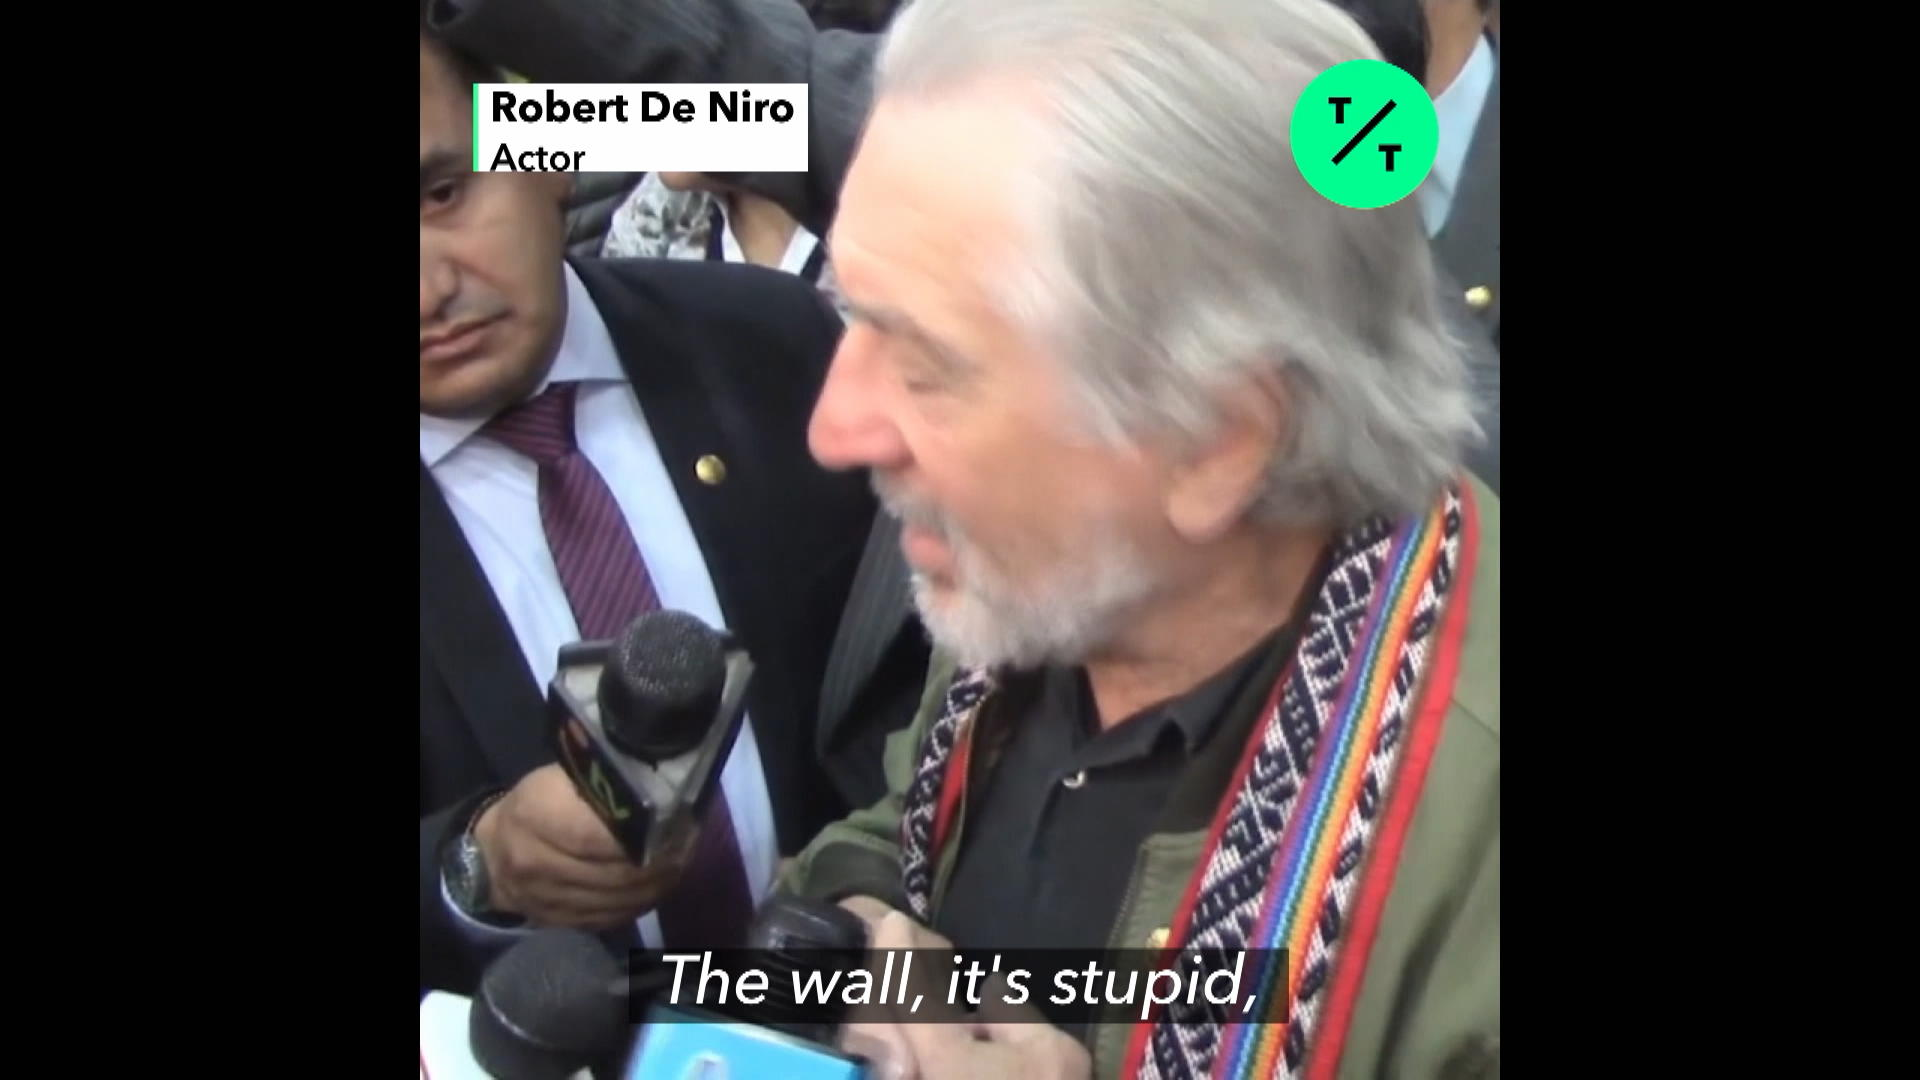 Robert De Niro on Trump's Wall